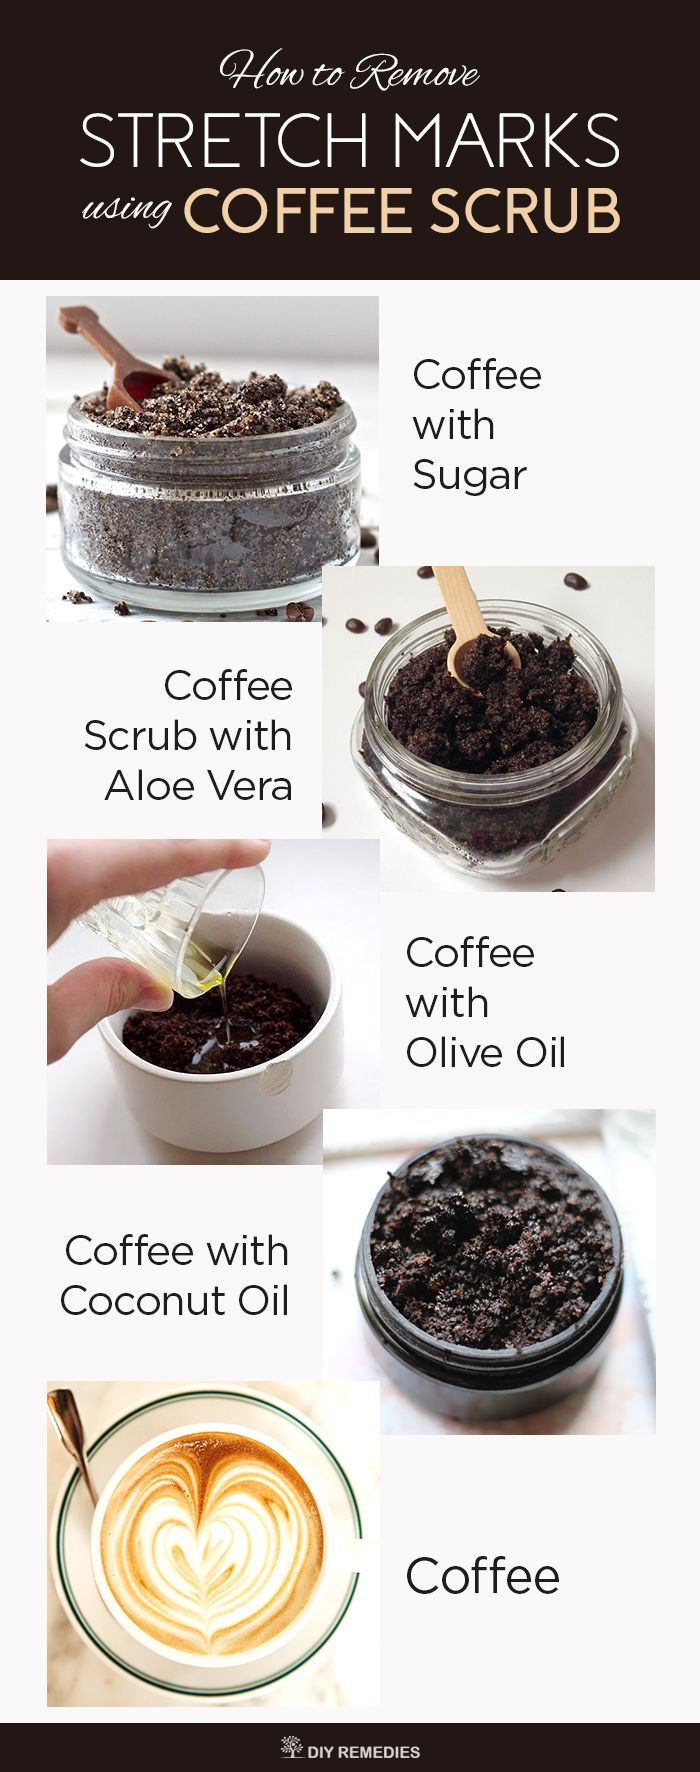 How to Remove Stretch Marks using Coffee Scrub There are many ways of using coffee scrub for stretch marks and the best are mentioned below. Try them regularly to fade away the stretch marks.